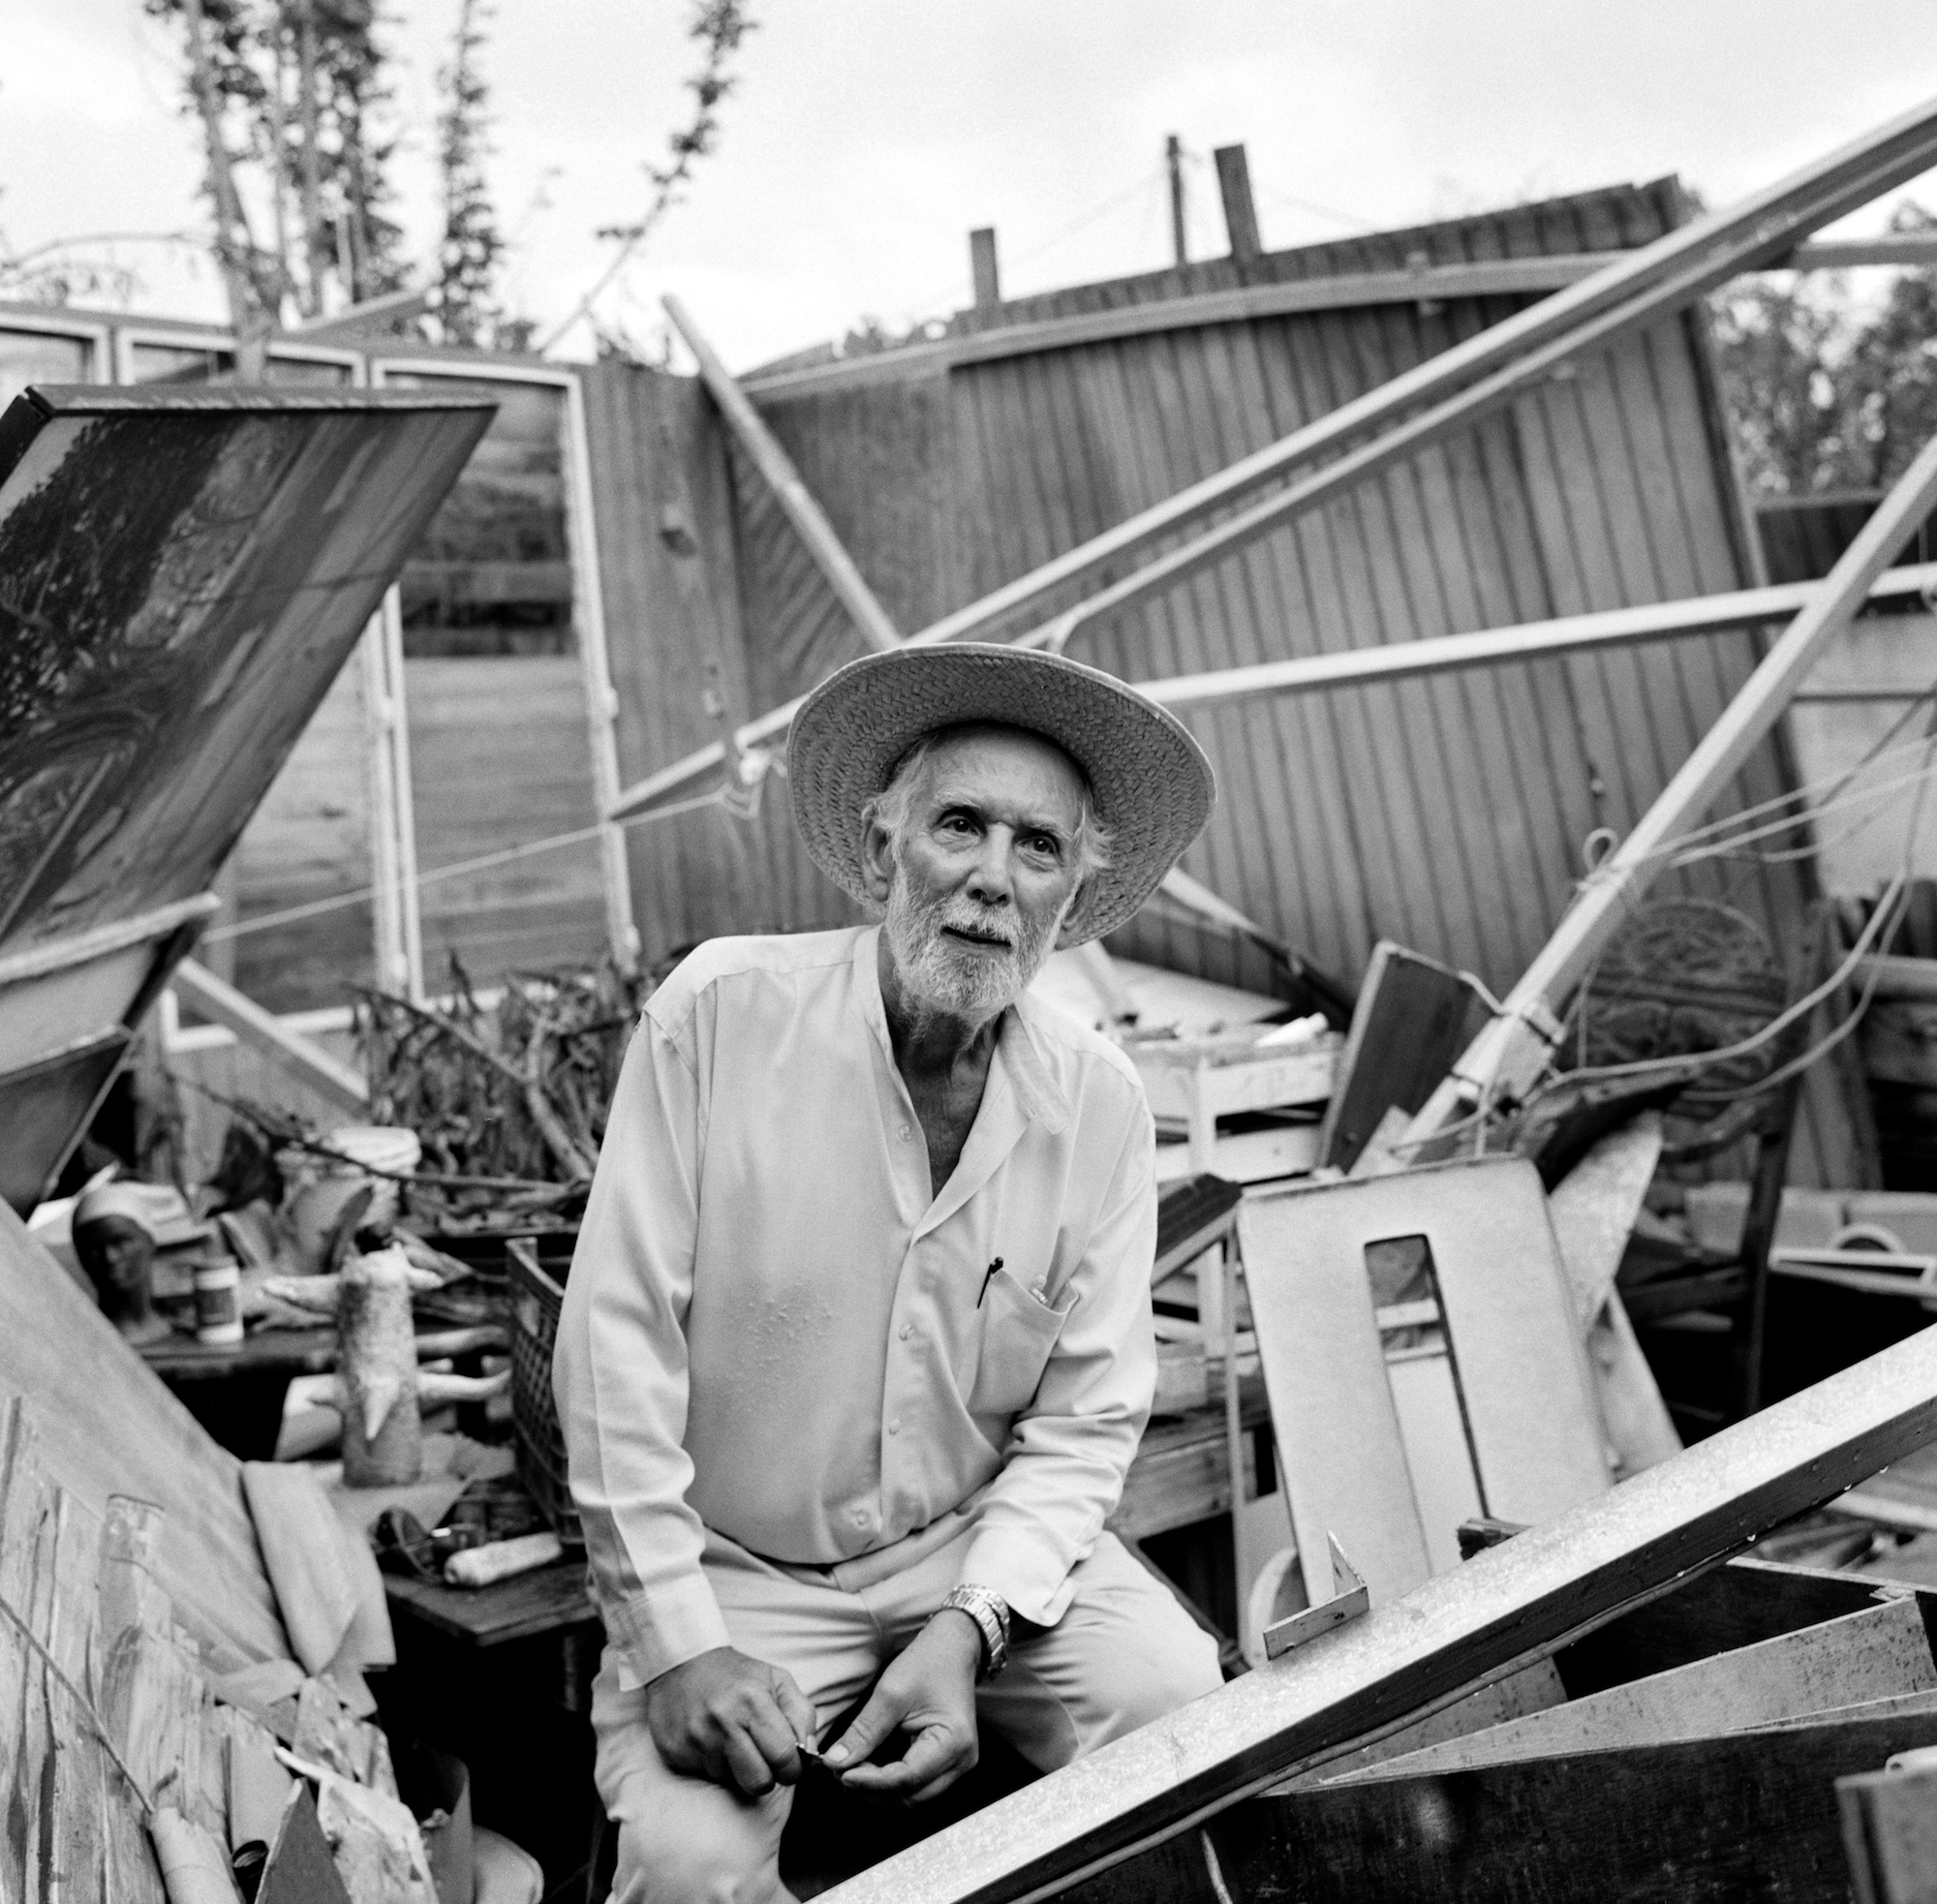 "Felix Rafael Cordero, an 86-year-old Korean War veteran, is a painter and photographer in Caguas. He left his house before Hurricane Maria, which destroyed it. ""My home and life's work were taken away,"" he said."